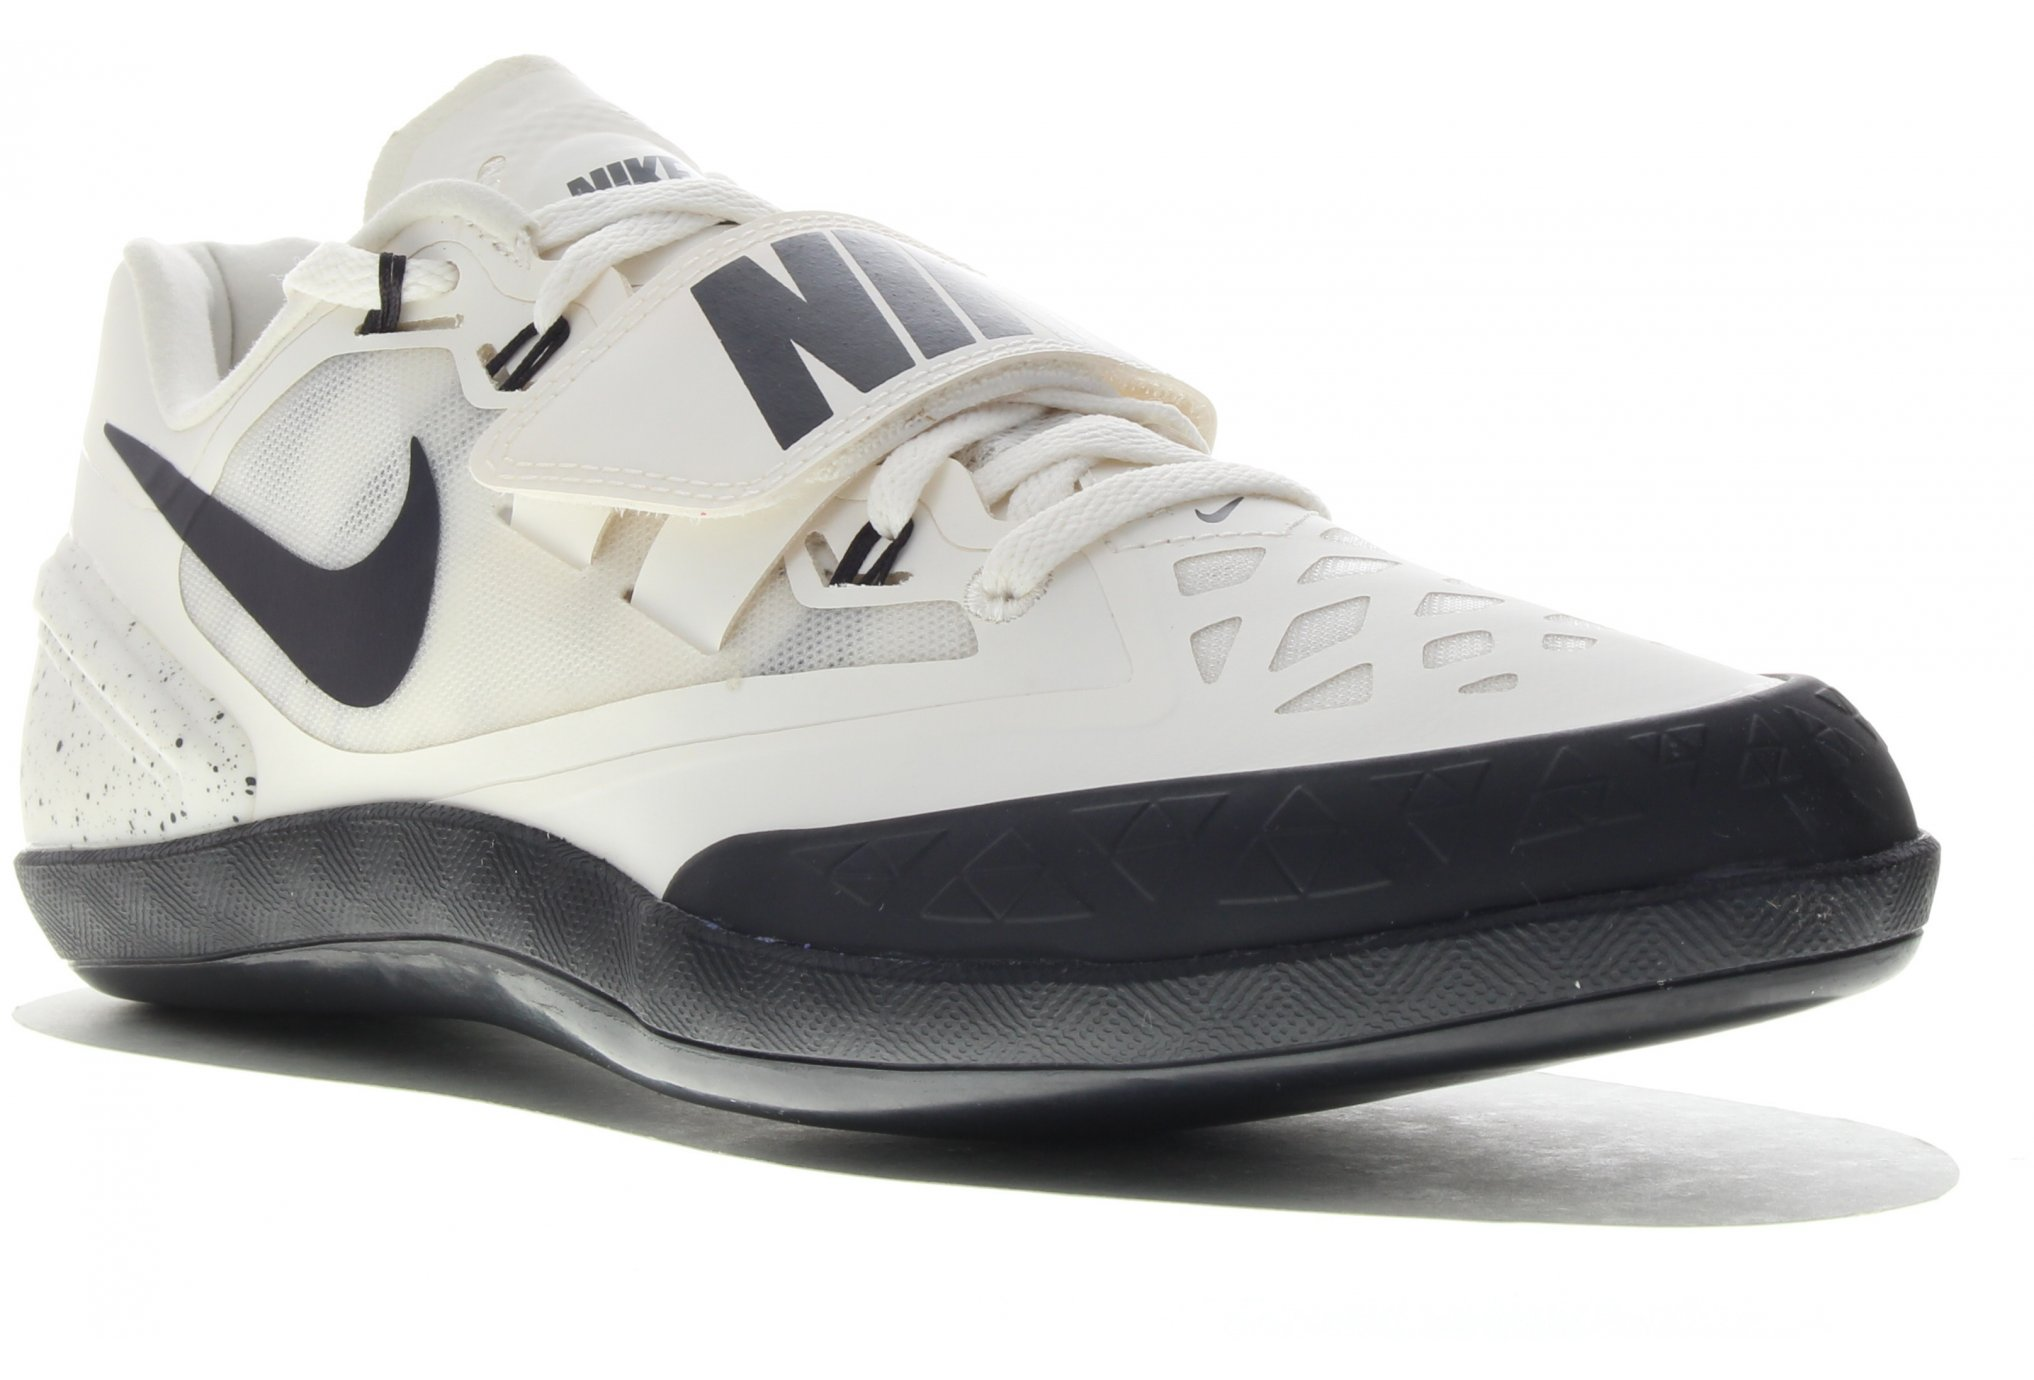 Trail Session Nike Zoom Rotational 6 M Chaussures homme